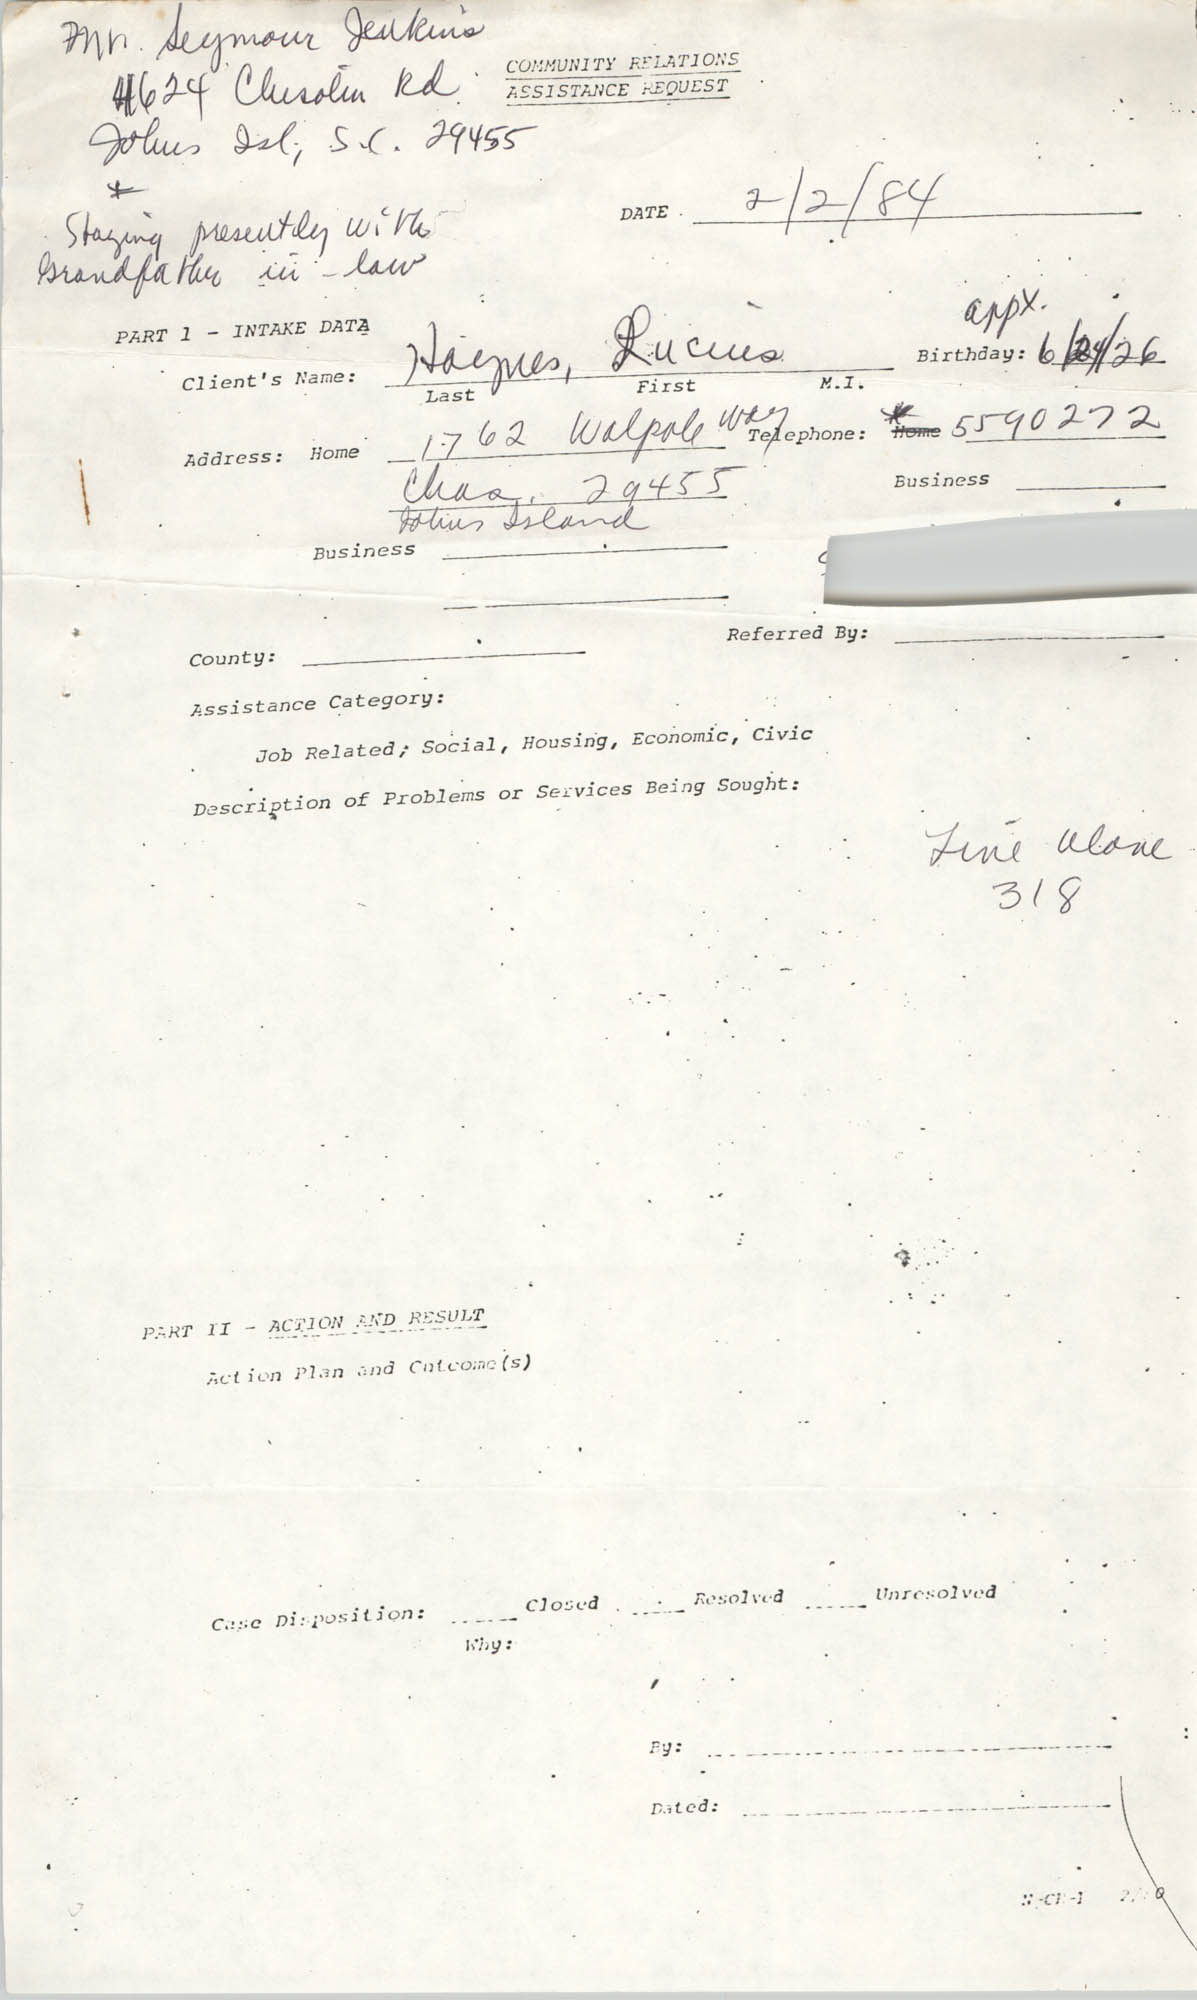 Community Relations Assistance Request, February 2, 1984